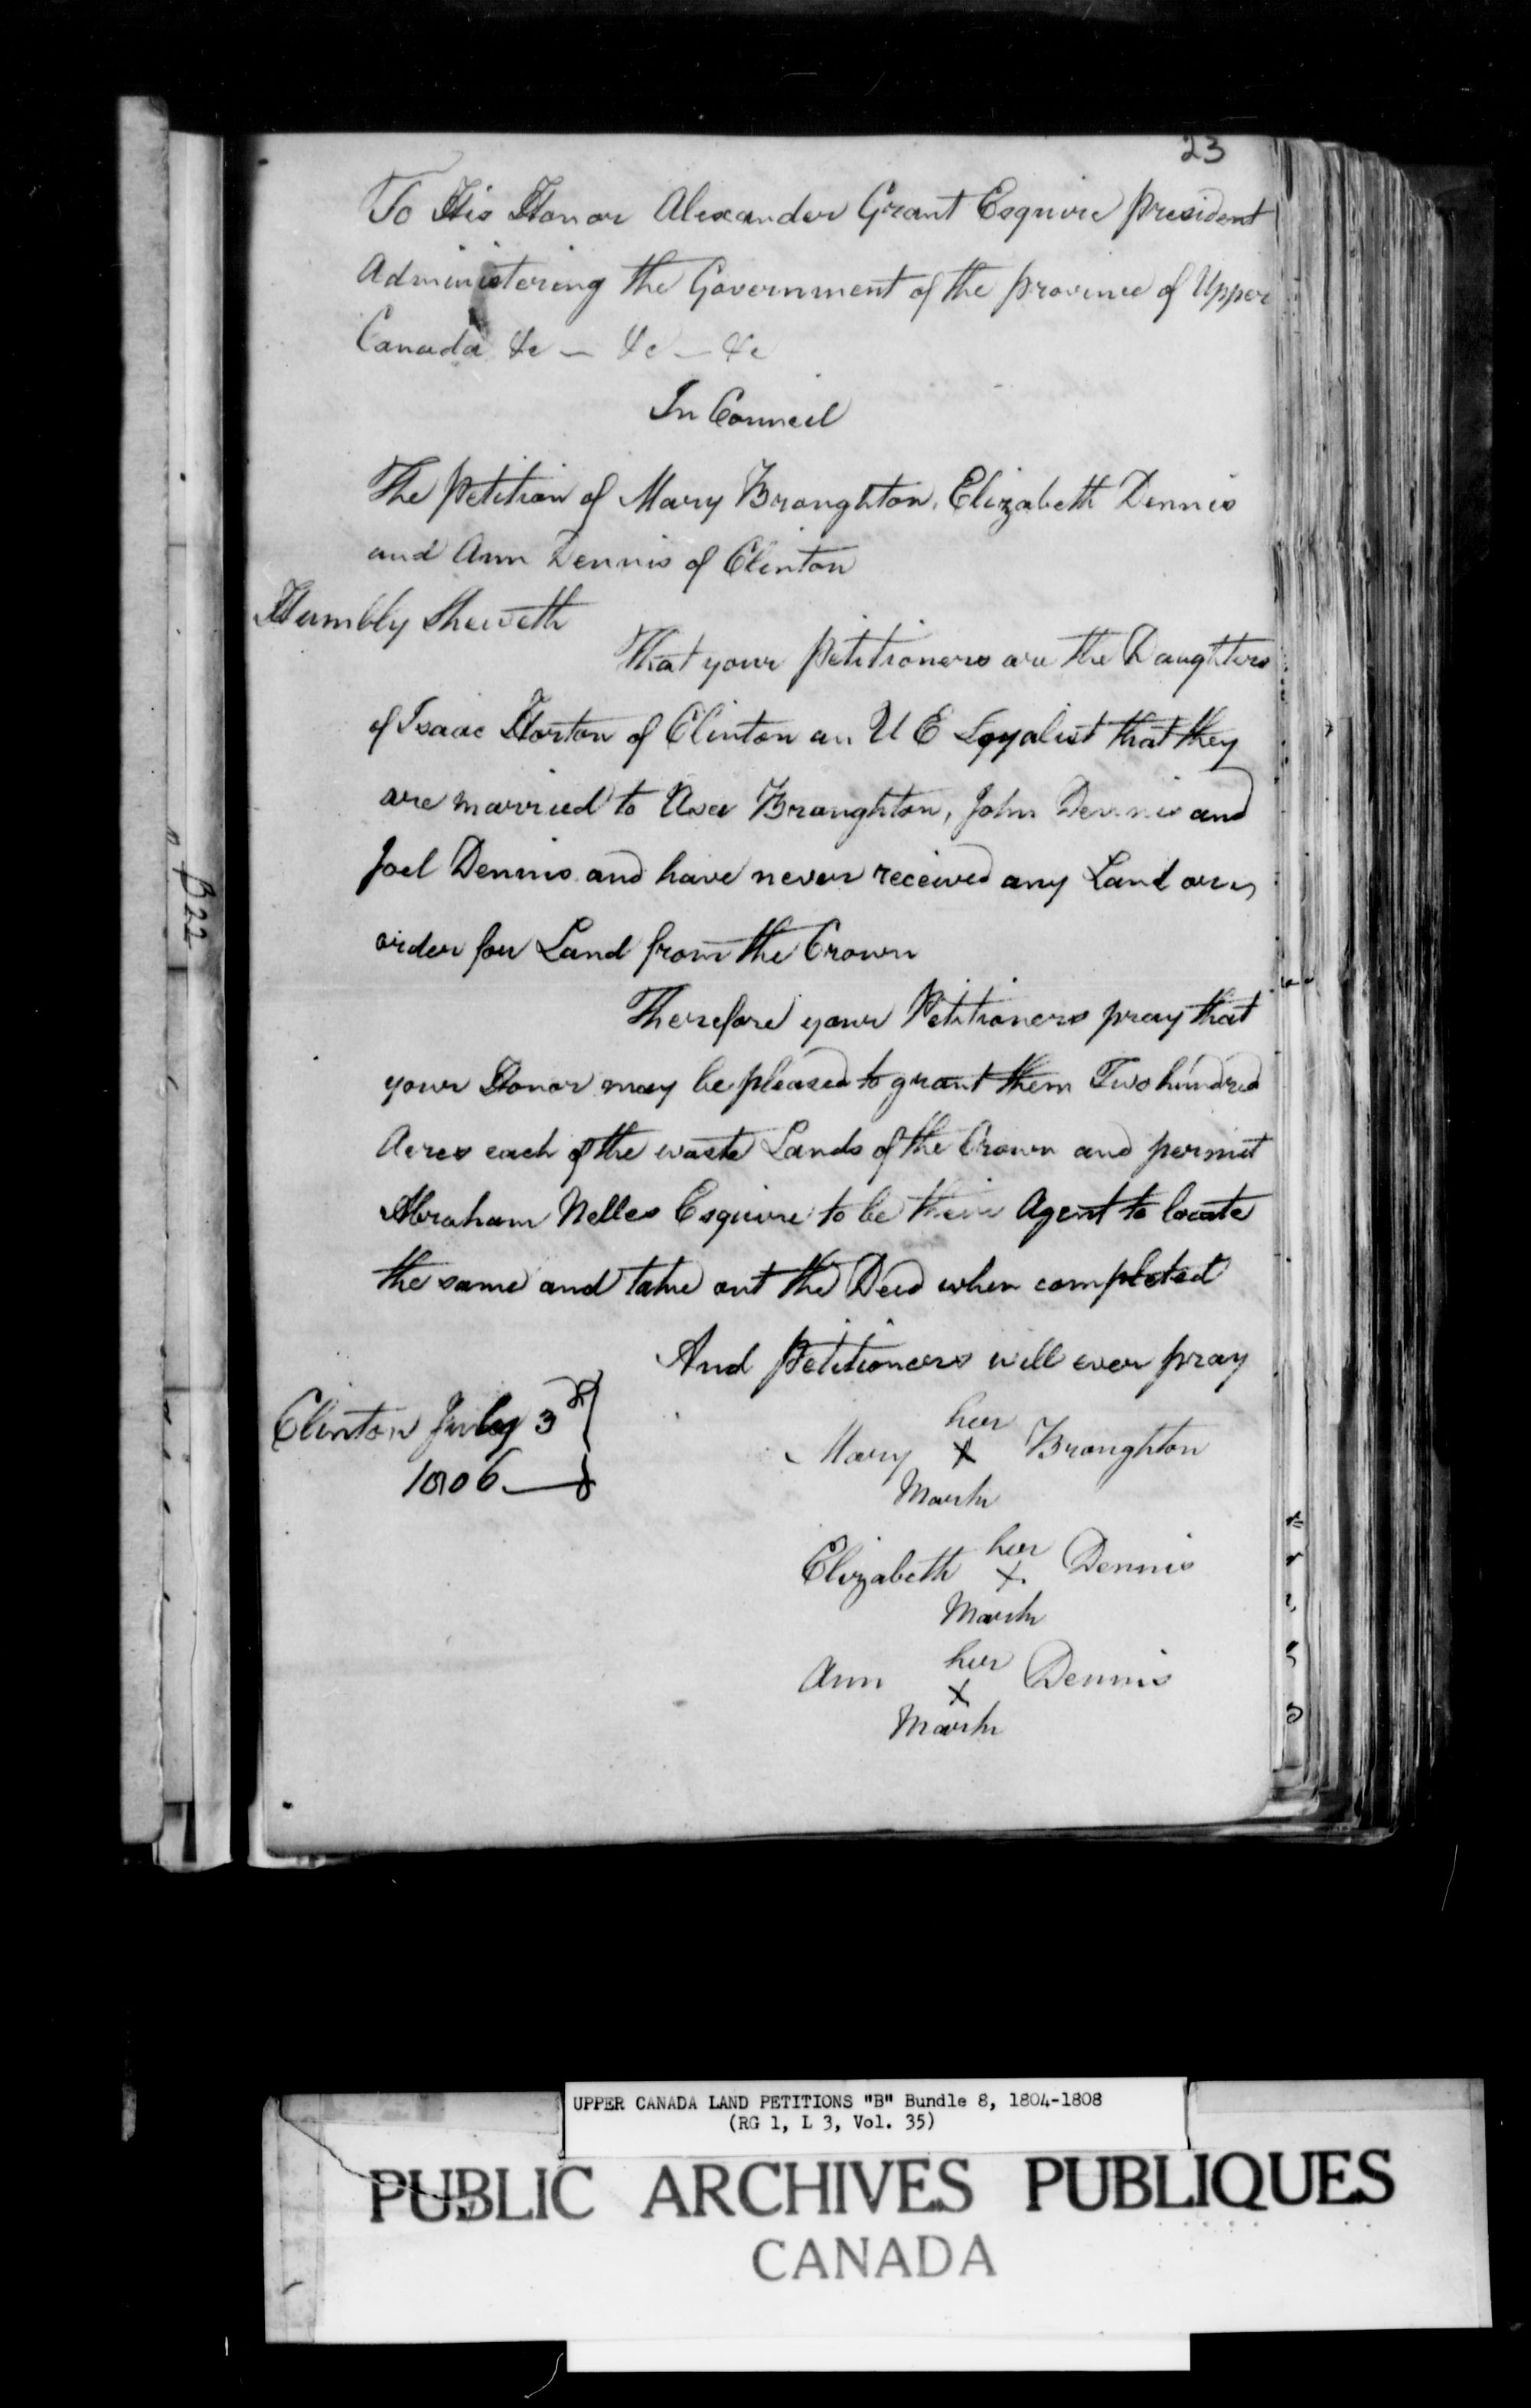 Title: Upper Canada Land Petitions (1763-1865) - Mikan Number: 205131 - Microform: c-1622